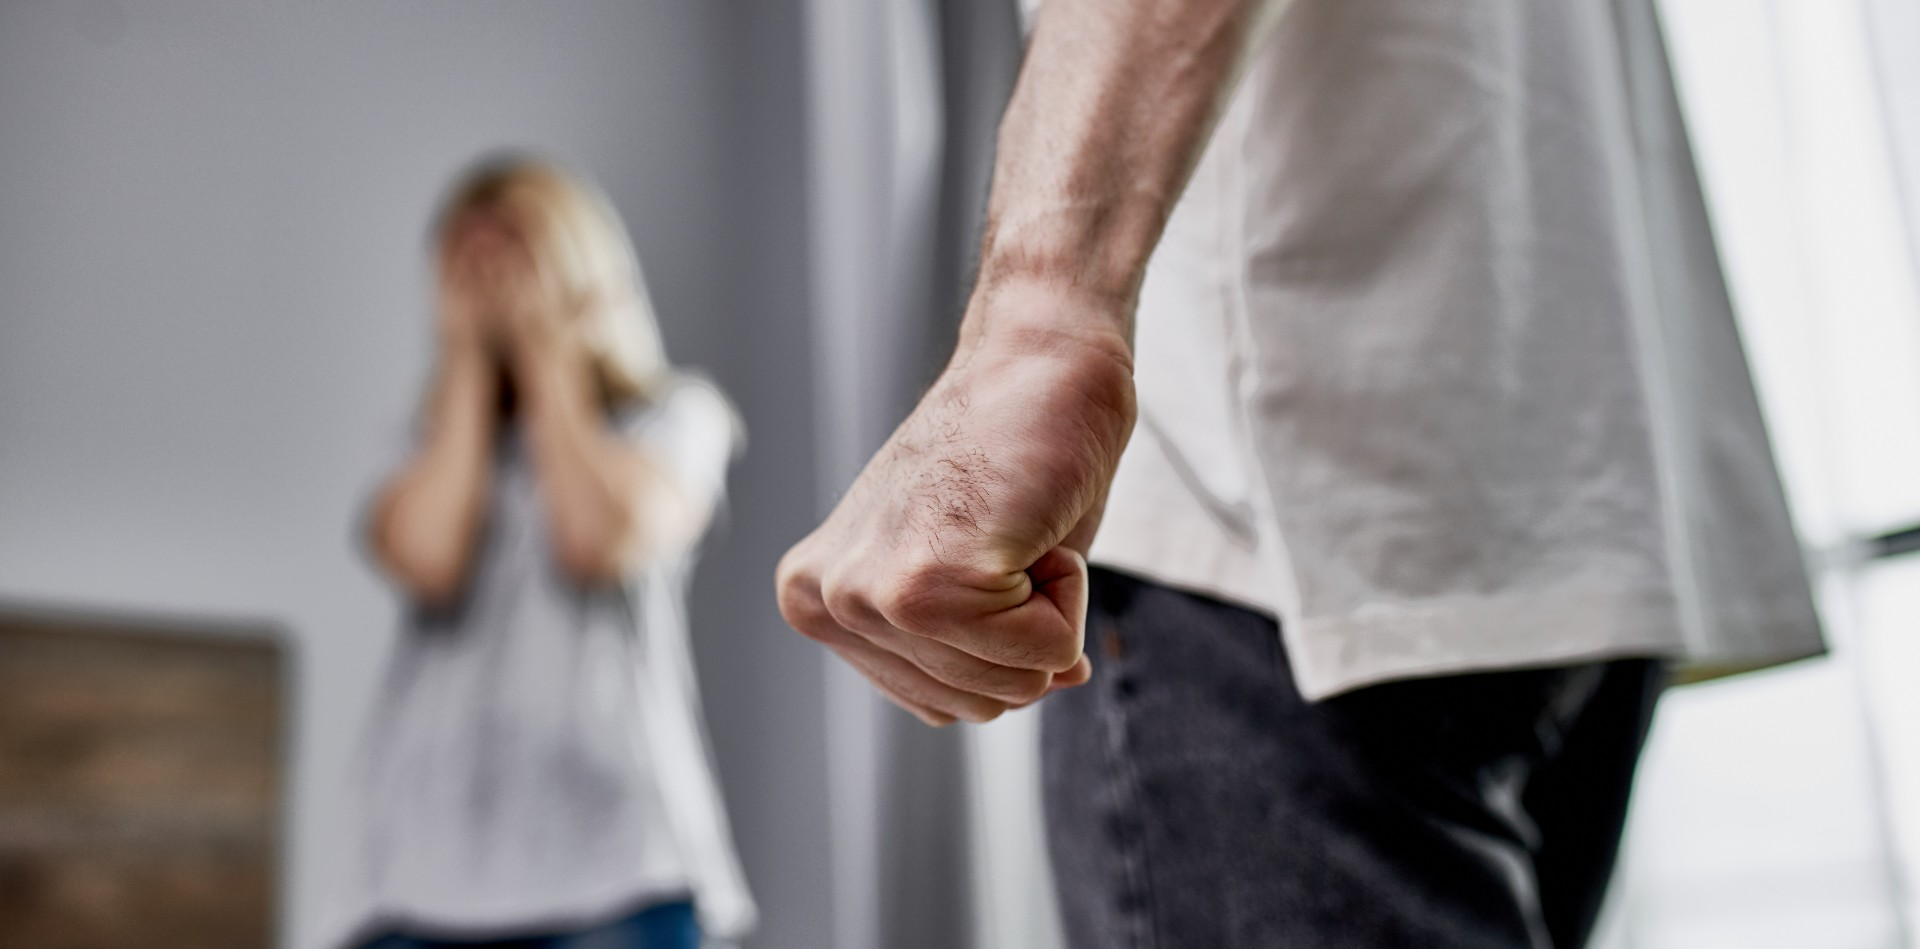 The Stages of Domestic Violence